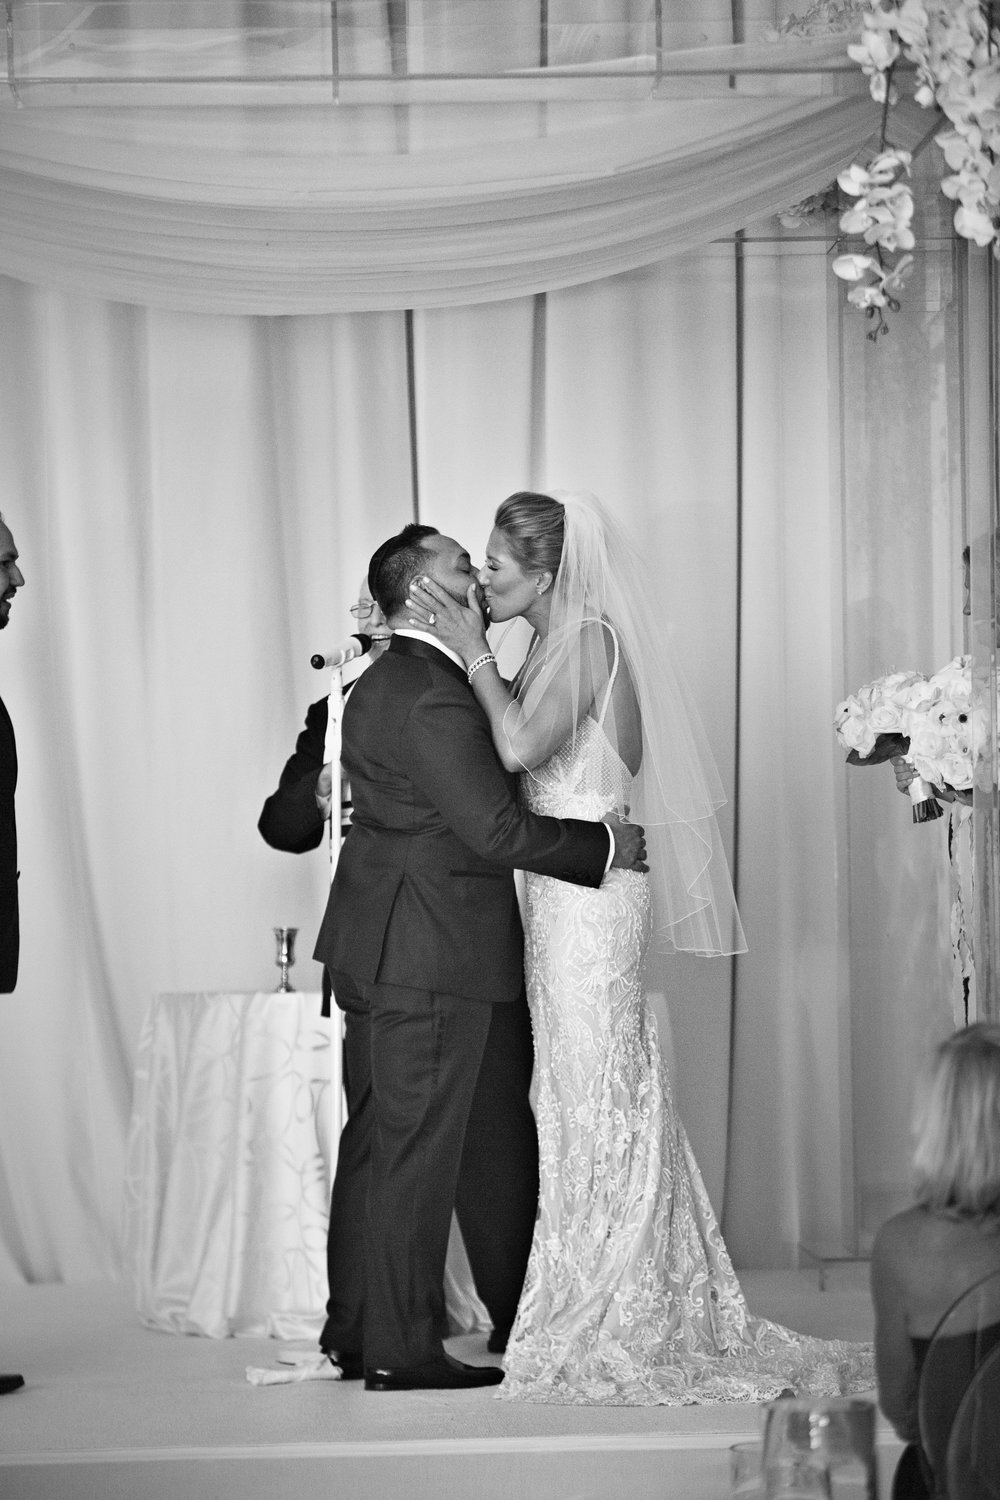 The first kiss.  WEDDING PLANNING & EVENT DESIGN •  Andrea Eppolito Events , PHOTOGRAPHY •  AltF Photography ,  FLORAL AND DECOR DESIGN & PRODUCTION • Destinations by Design , CATERING •  Mandarin Oriental Las Vegas , COCKTAILS •  The Grand Bevy , WEDDING GOWN •  Galia Lahav ,  SHOES •  Jimmy Choo